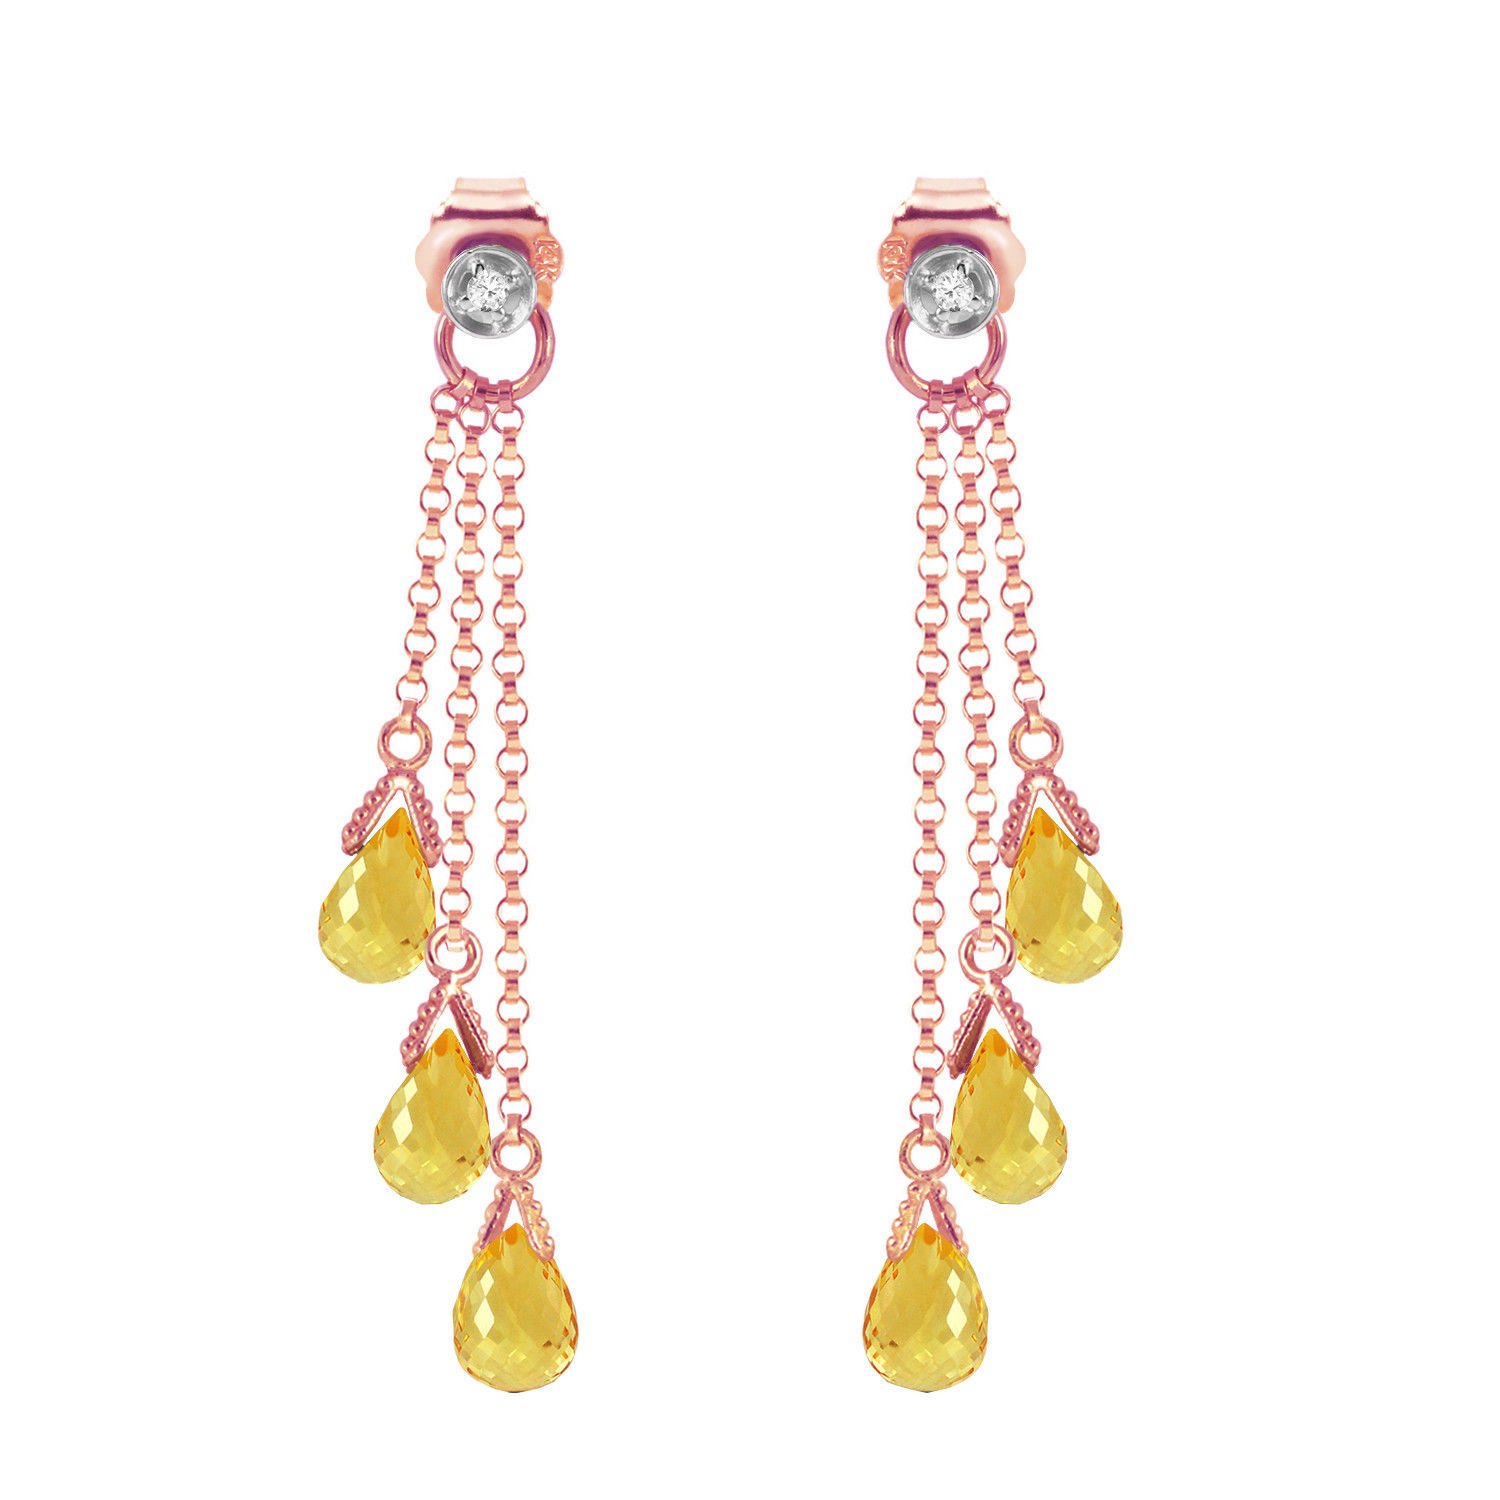 Primary image for 14K Solid Rose Gold Chandelier Earrings withDiamonds & Citrines